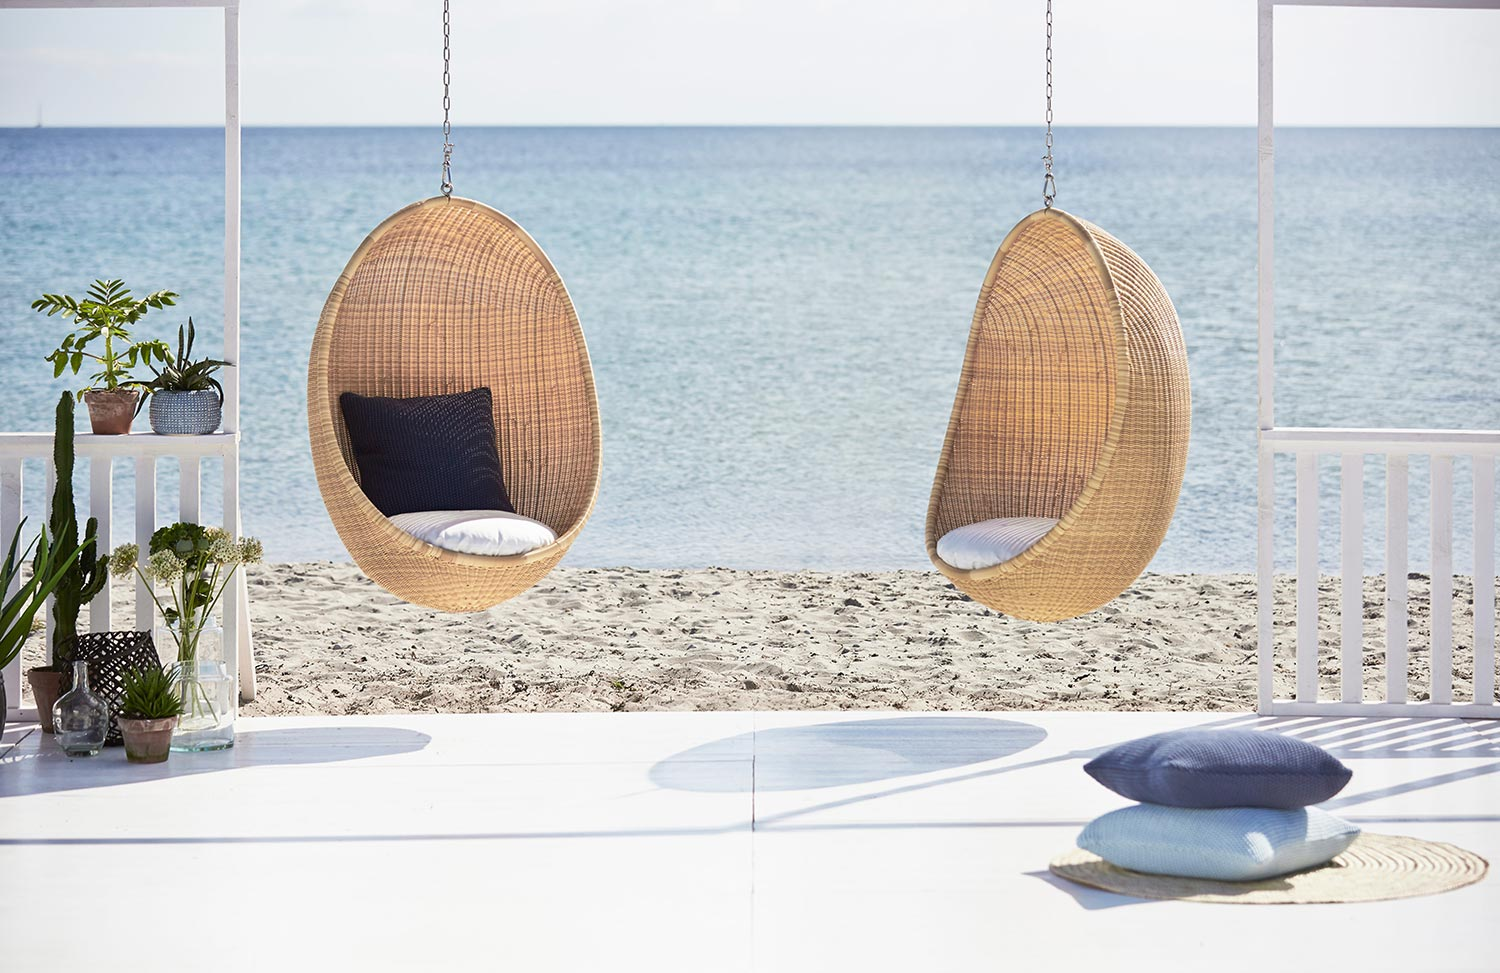 The hanging Egg Chair vid havet.